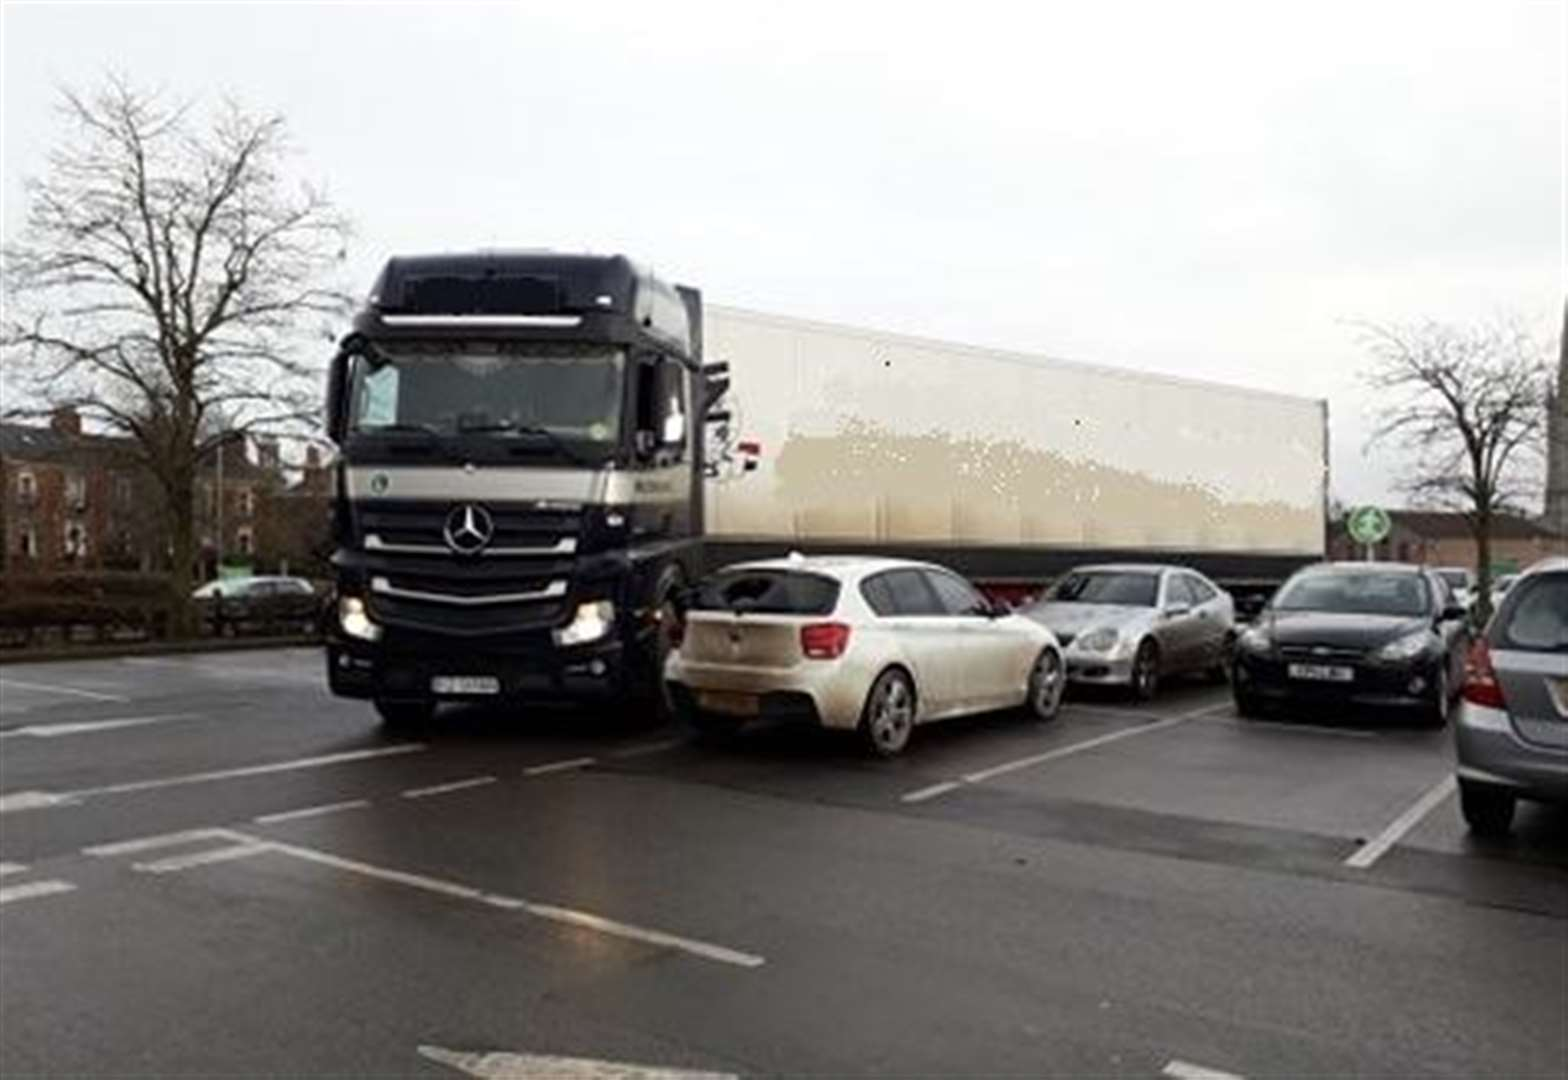 Cars 'damaged' after lorry gets stuck in Grantham supermarket car park